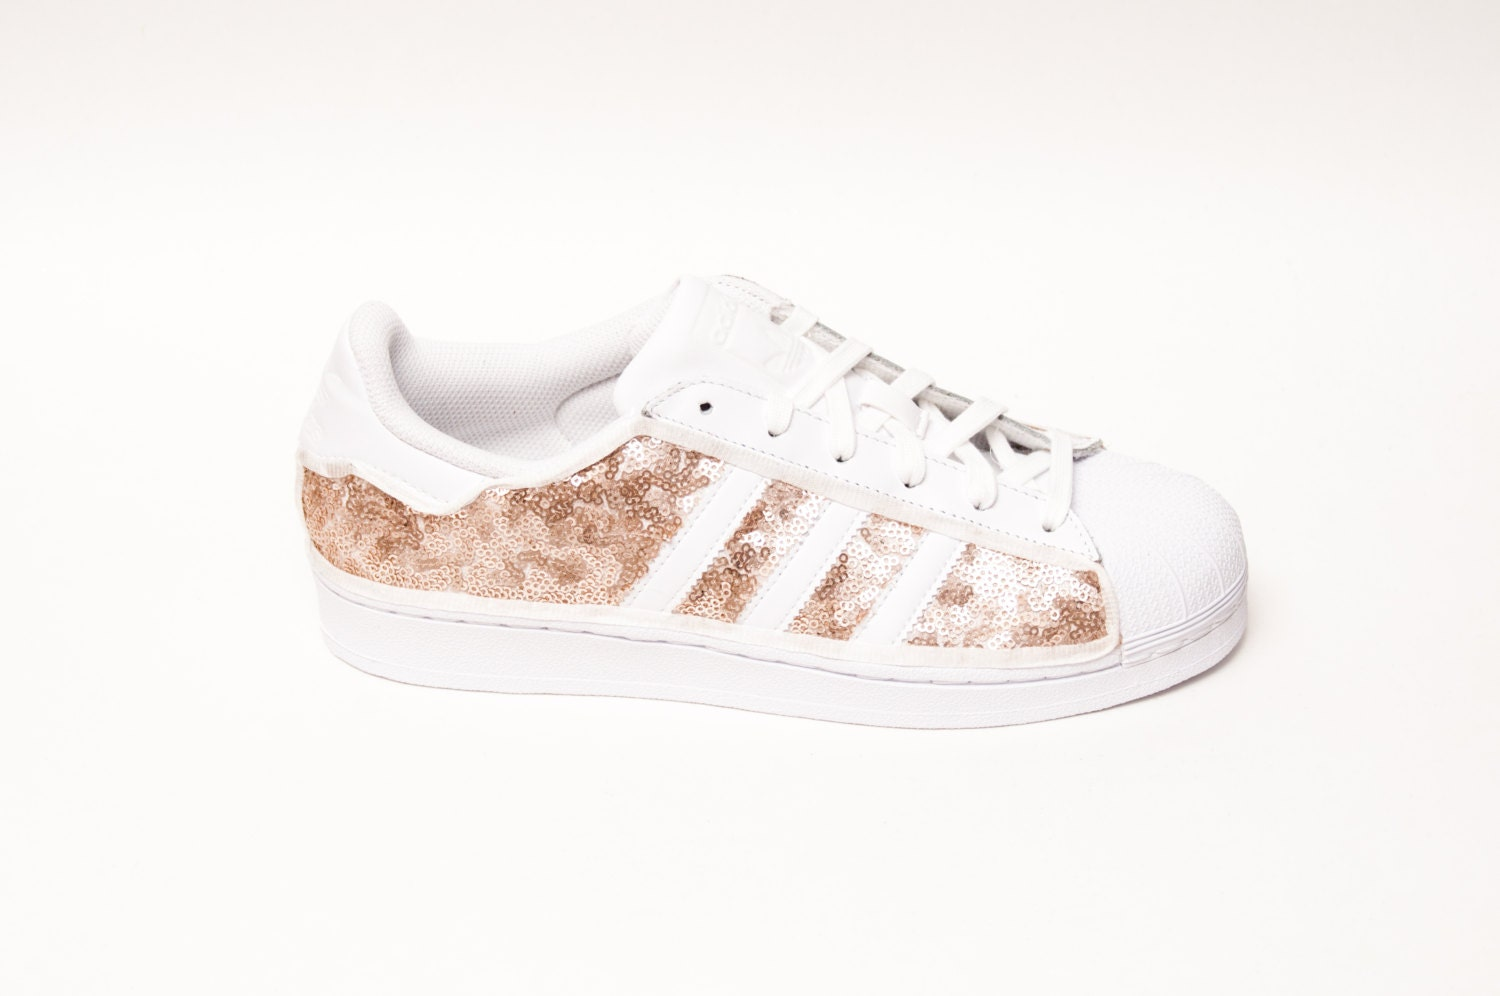 photos officielles 89a9e 367b4 Create Your Own Sequin Adidas Superstars Sneakers